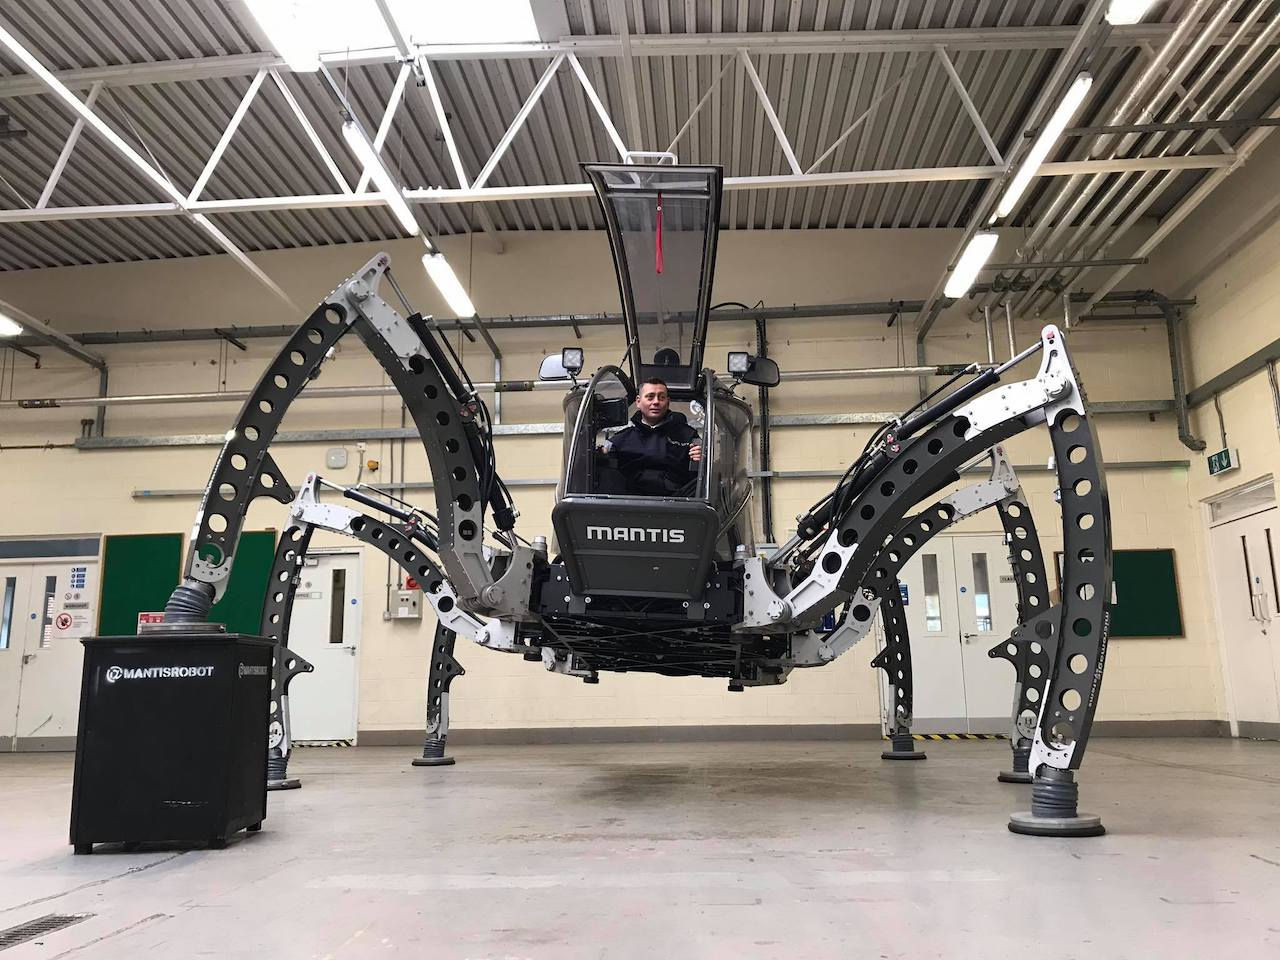 The Incredible 'Mantis' Robotic Walking Machine Sets World Record for 'Largest Rideable Hexapod Robot'